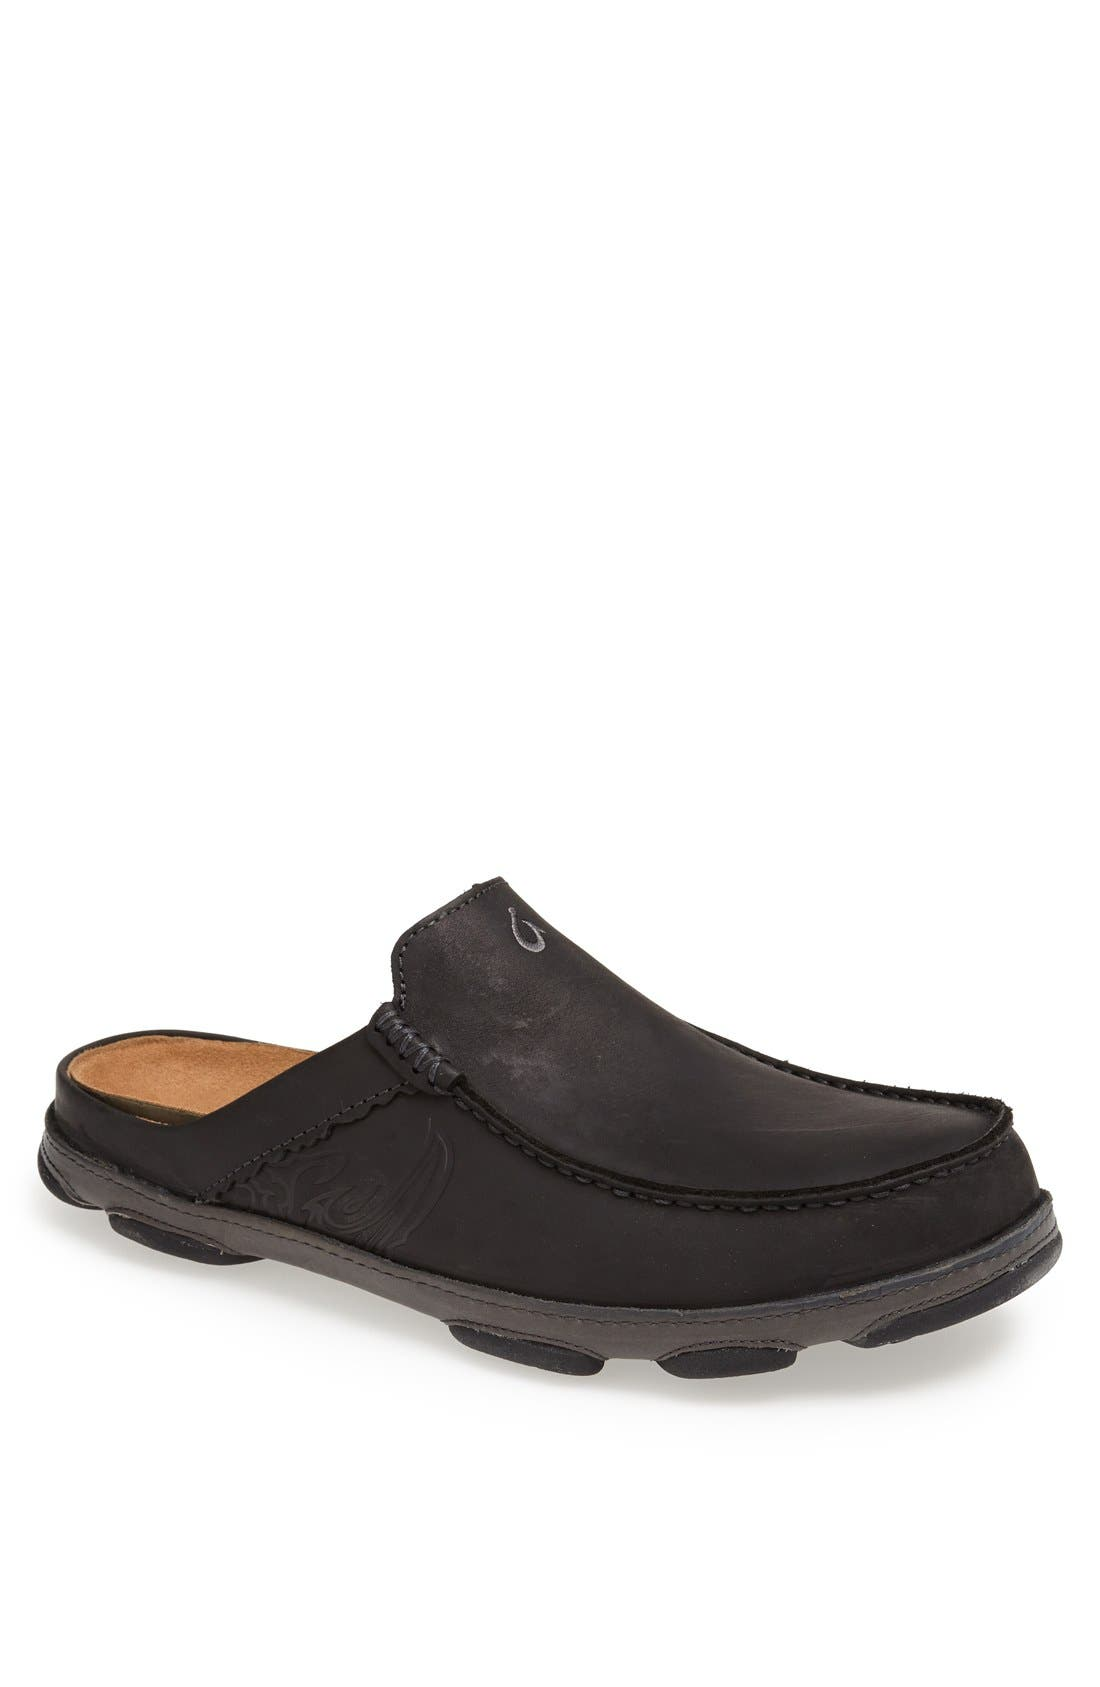 Main Image - OluKai 'Kono' Slip-On